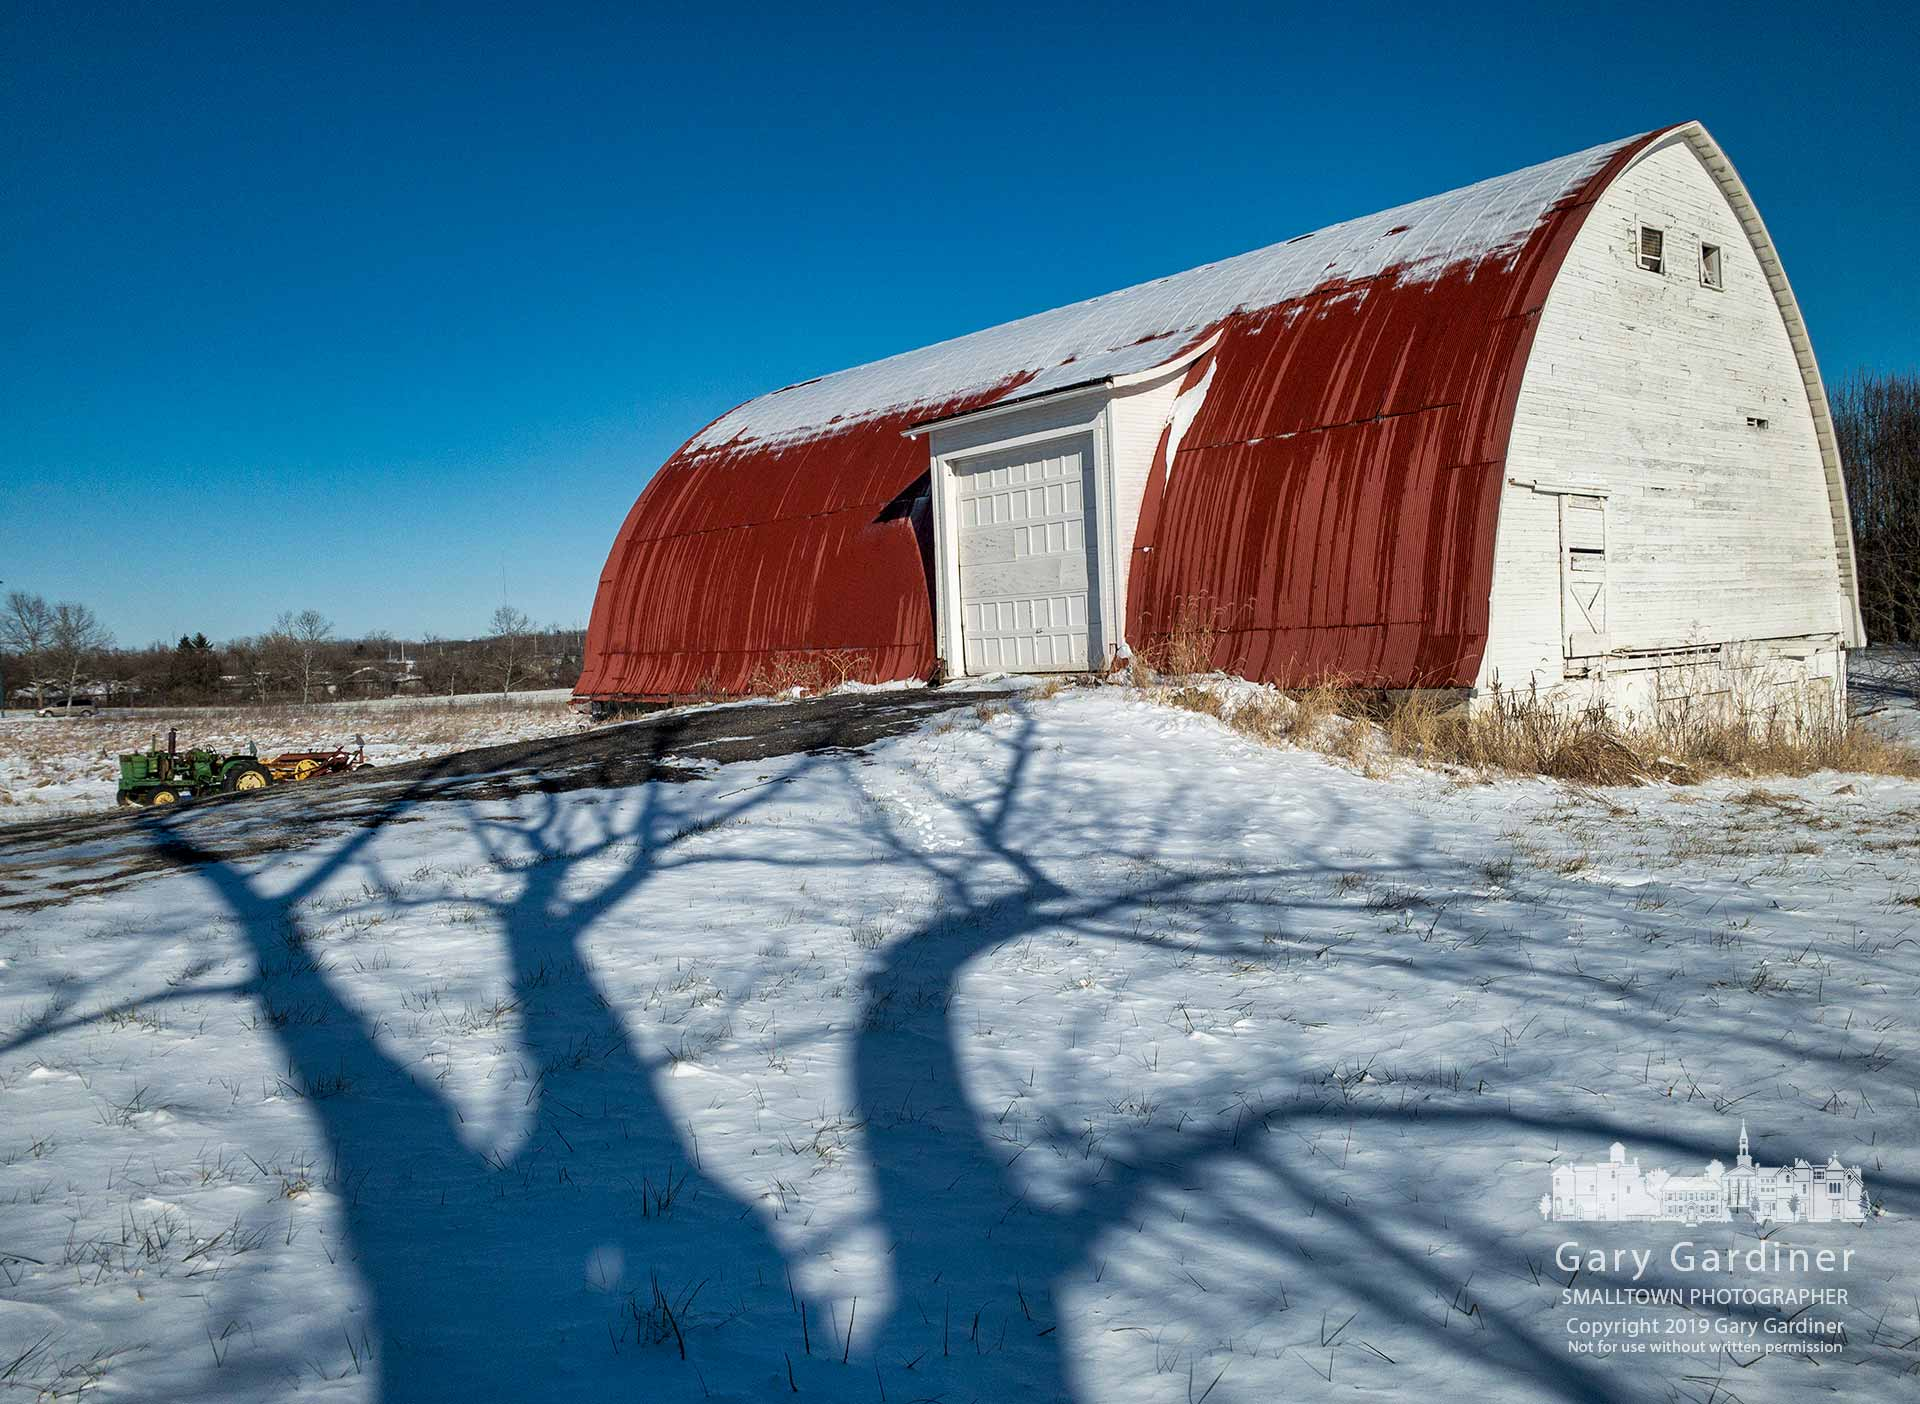 The shadow of the walnut tree behind the old farmhouse at the Braun Farm slowly creeps toward the barn on a crisp, cold winter afternoon. My Final Photo for Jan. 21, 2019